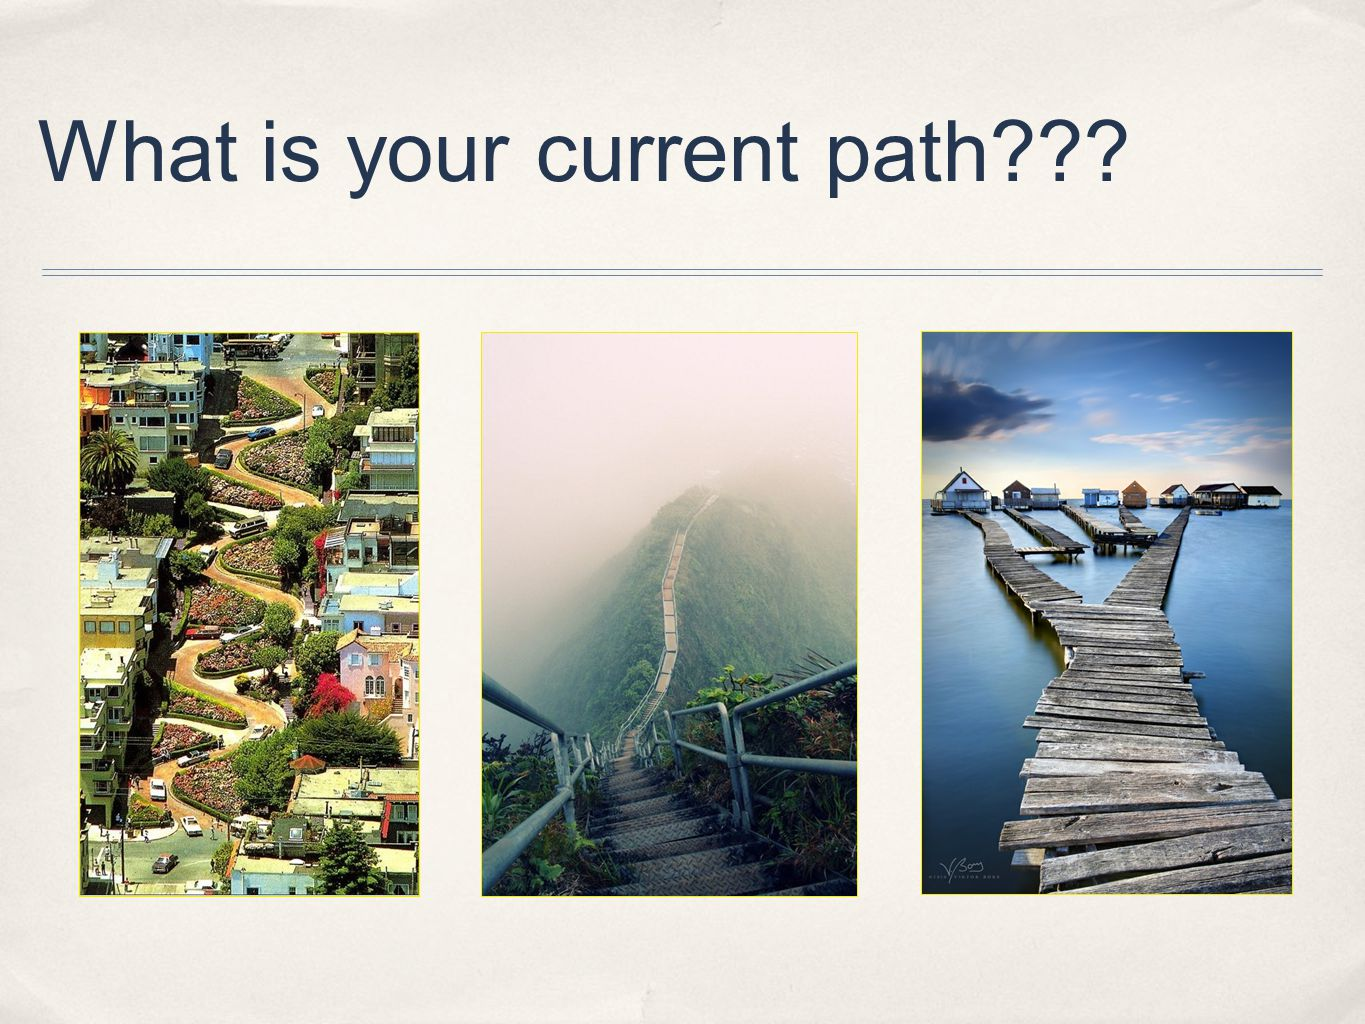 What is your current path